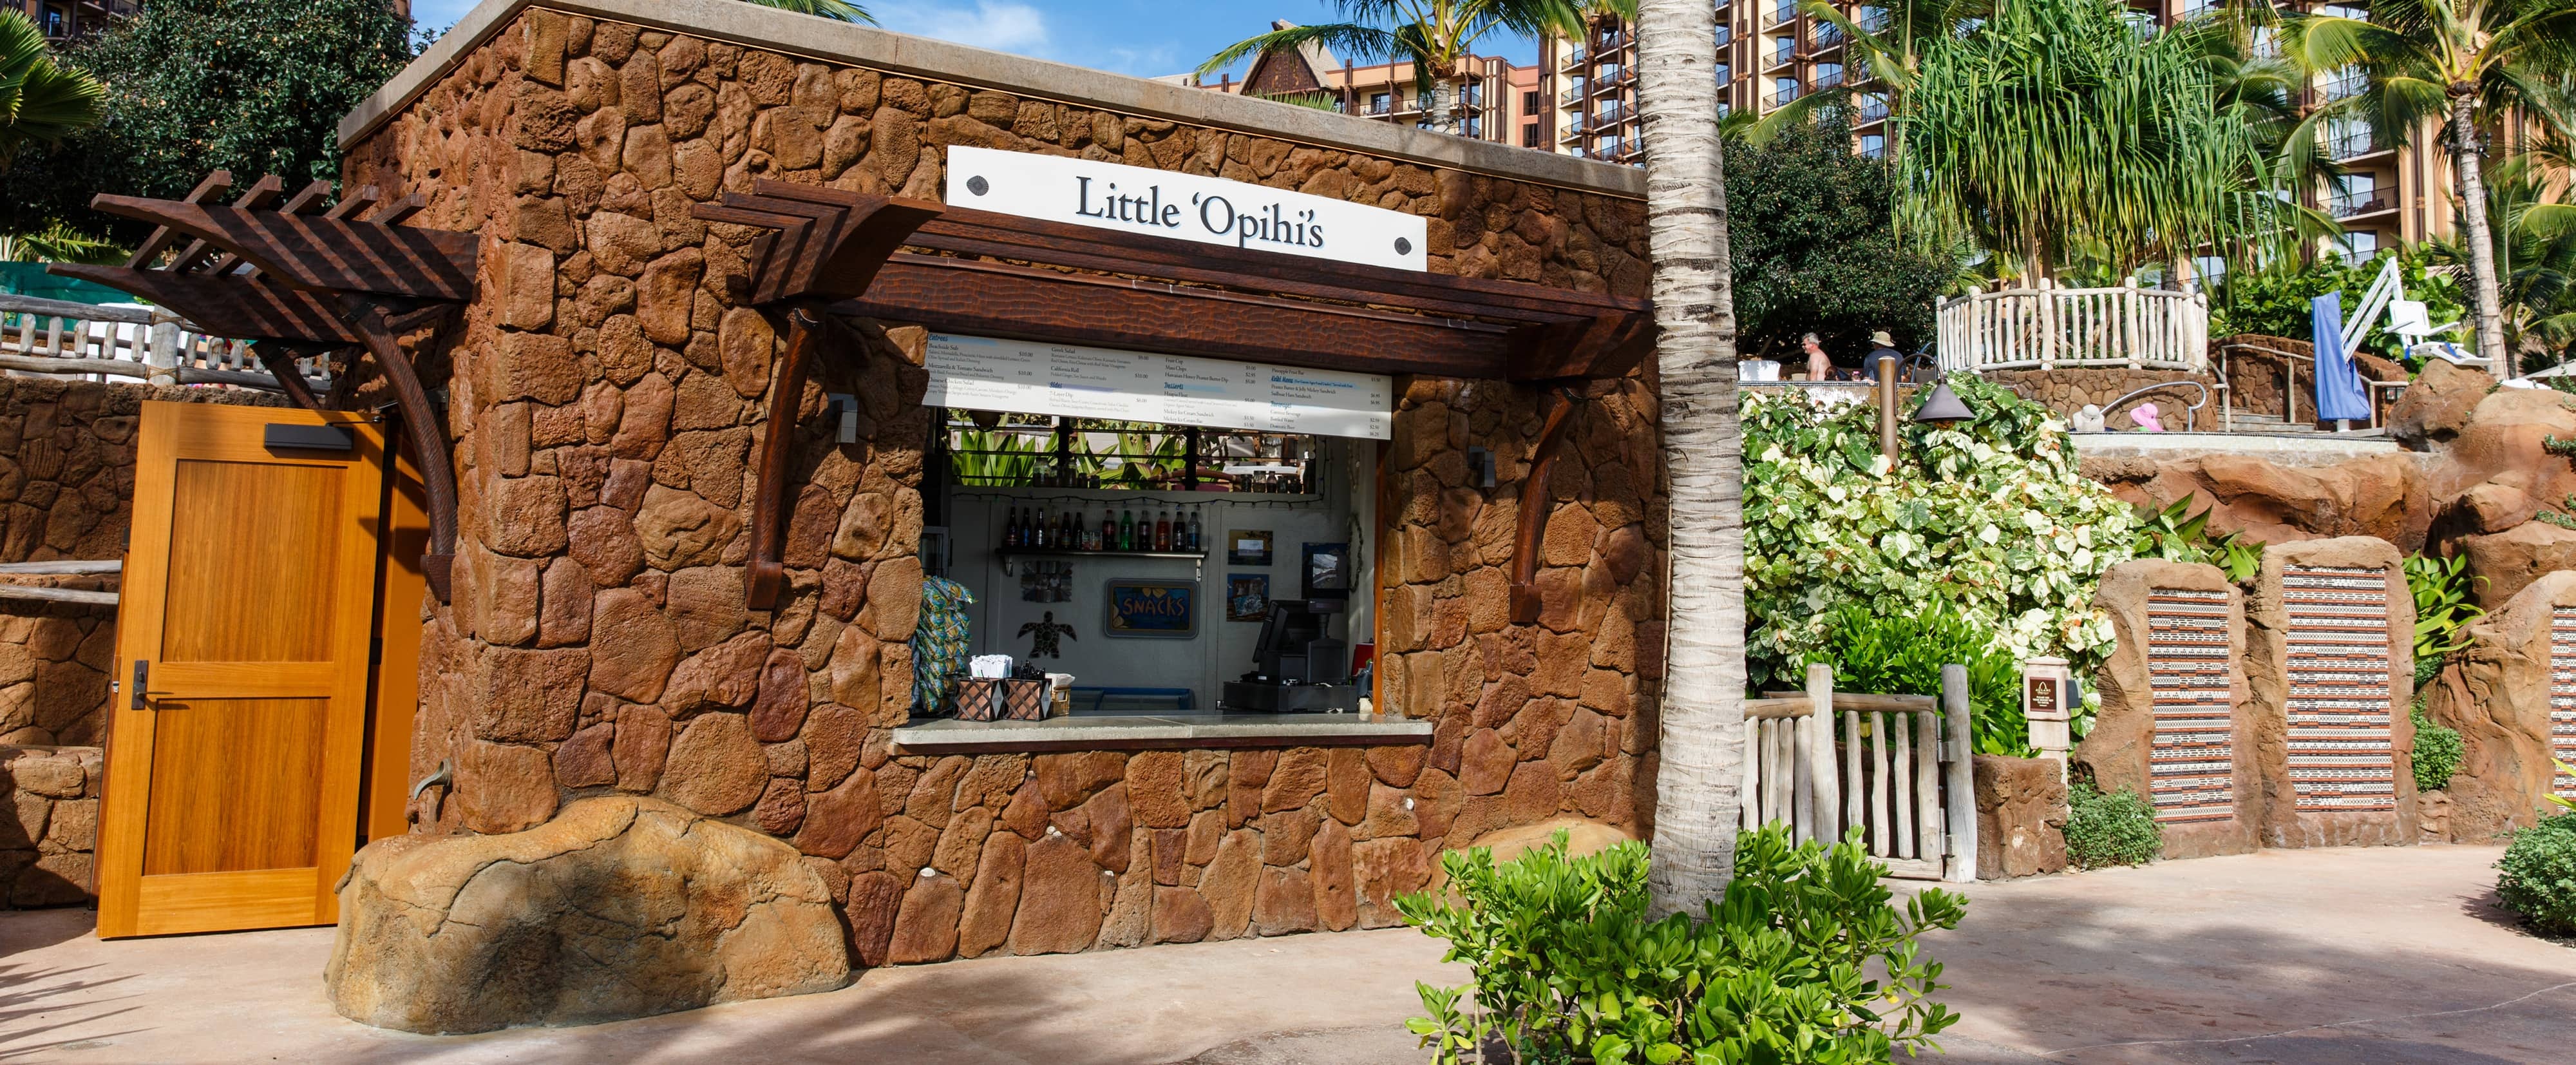 The exterior of Little 'Opihi's, a rectangular, stone-walled shack with a quick-service window